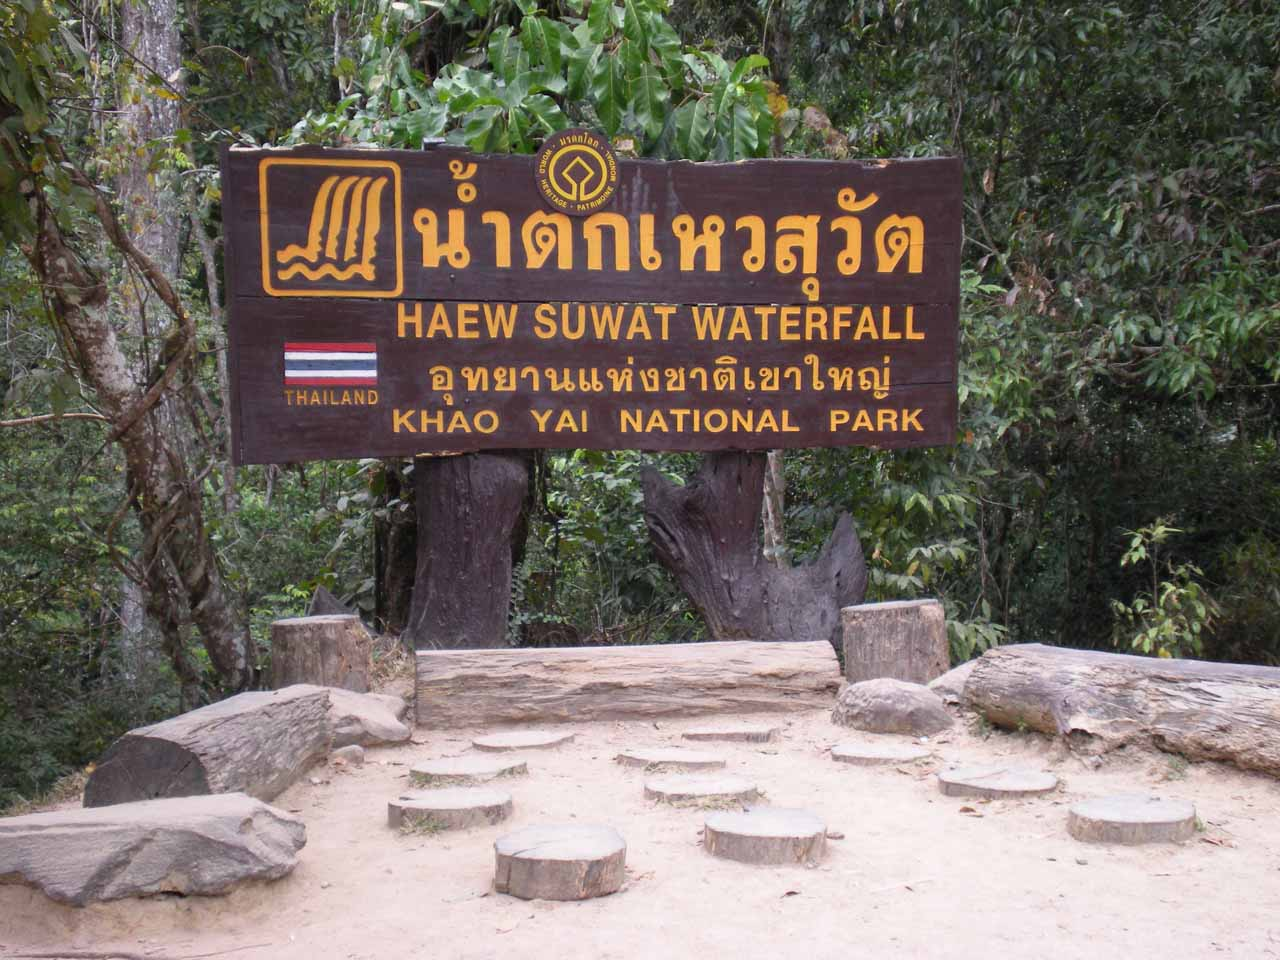 At the Haew Suwat Waterfall car park